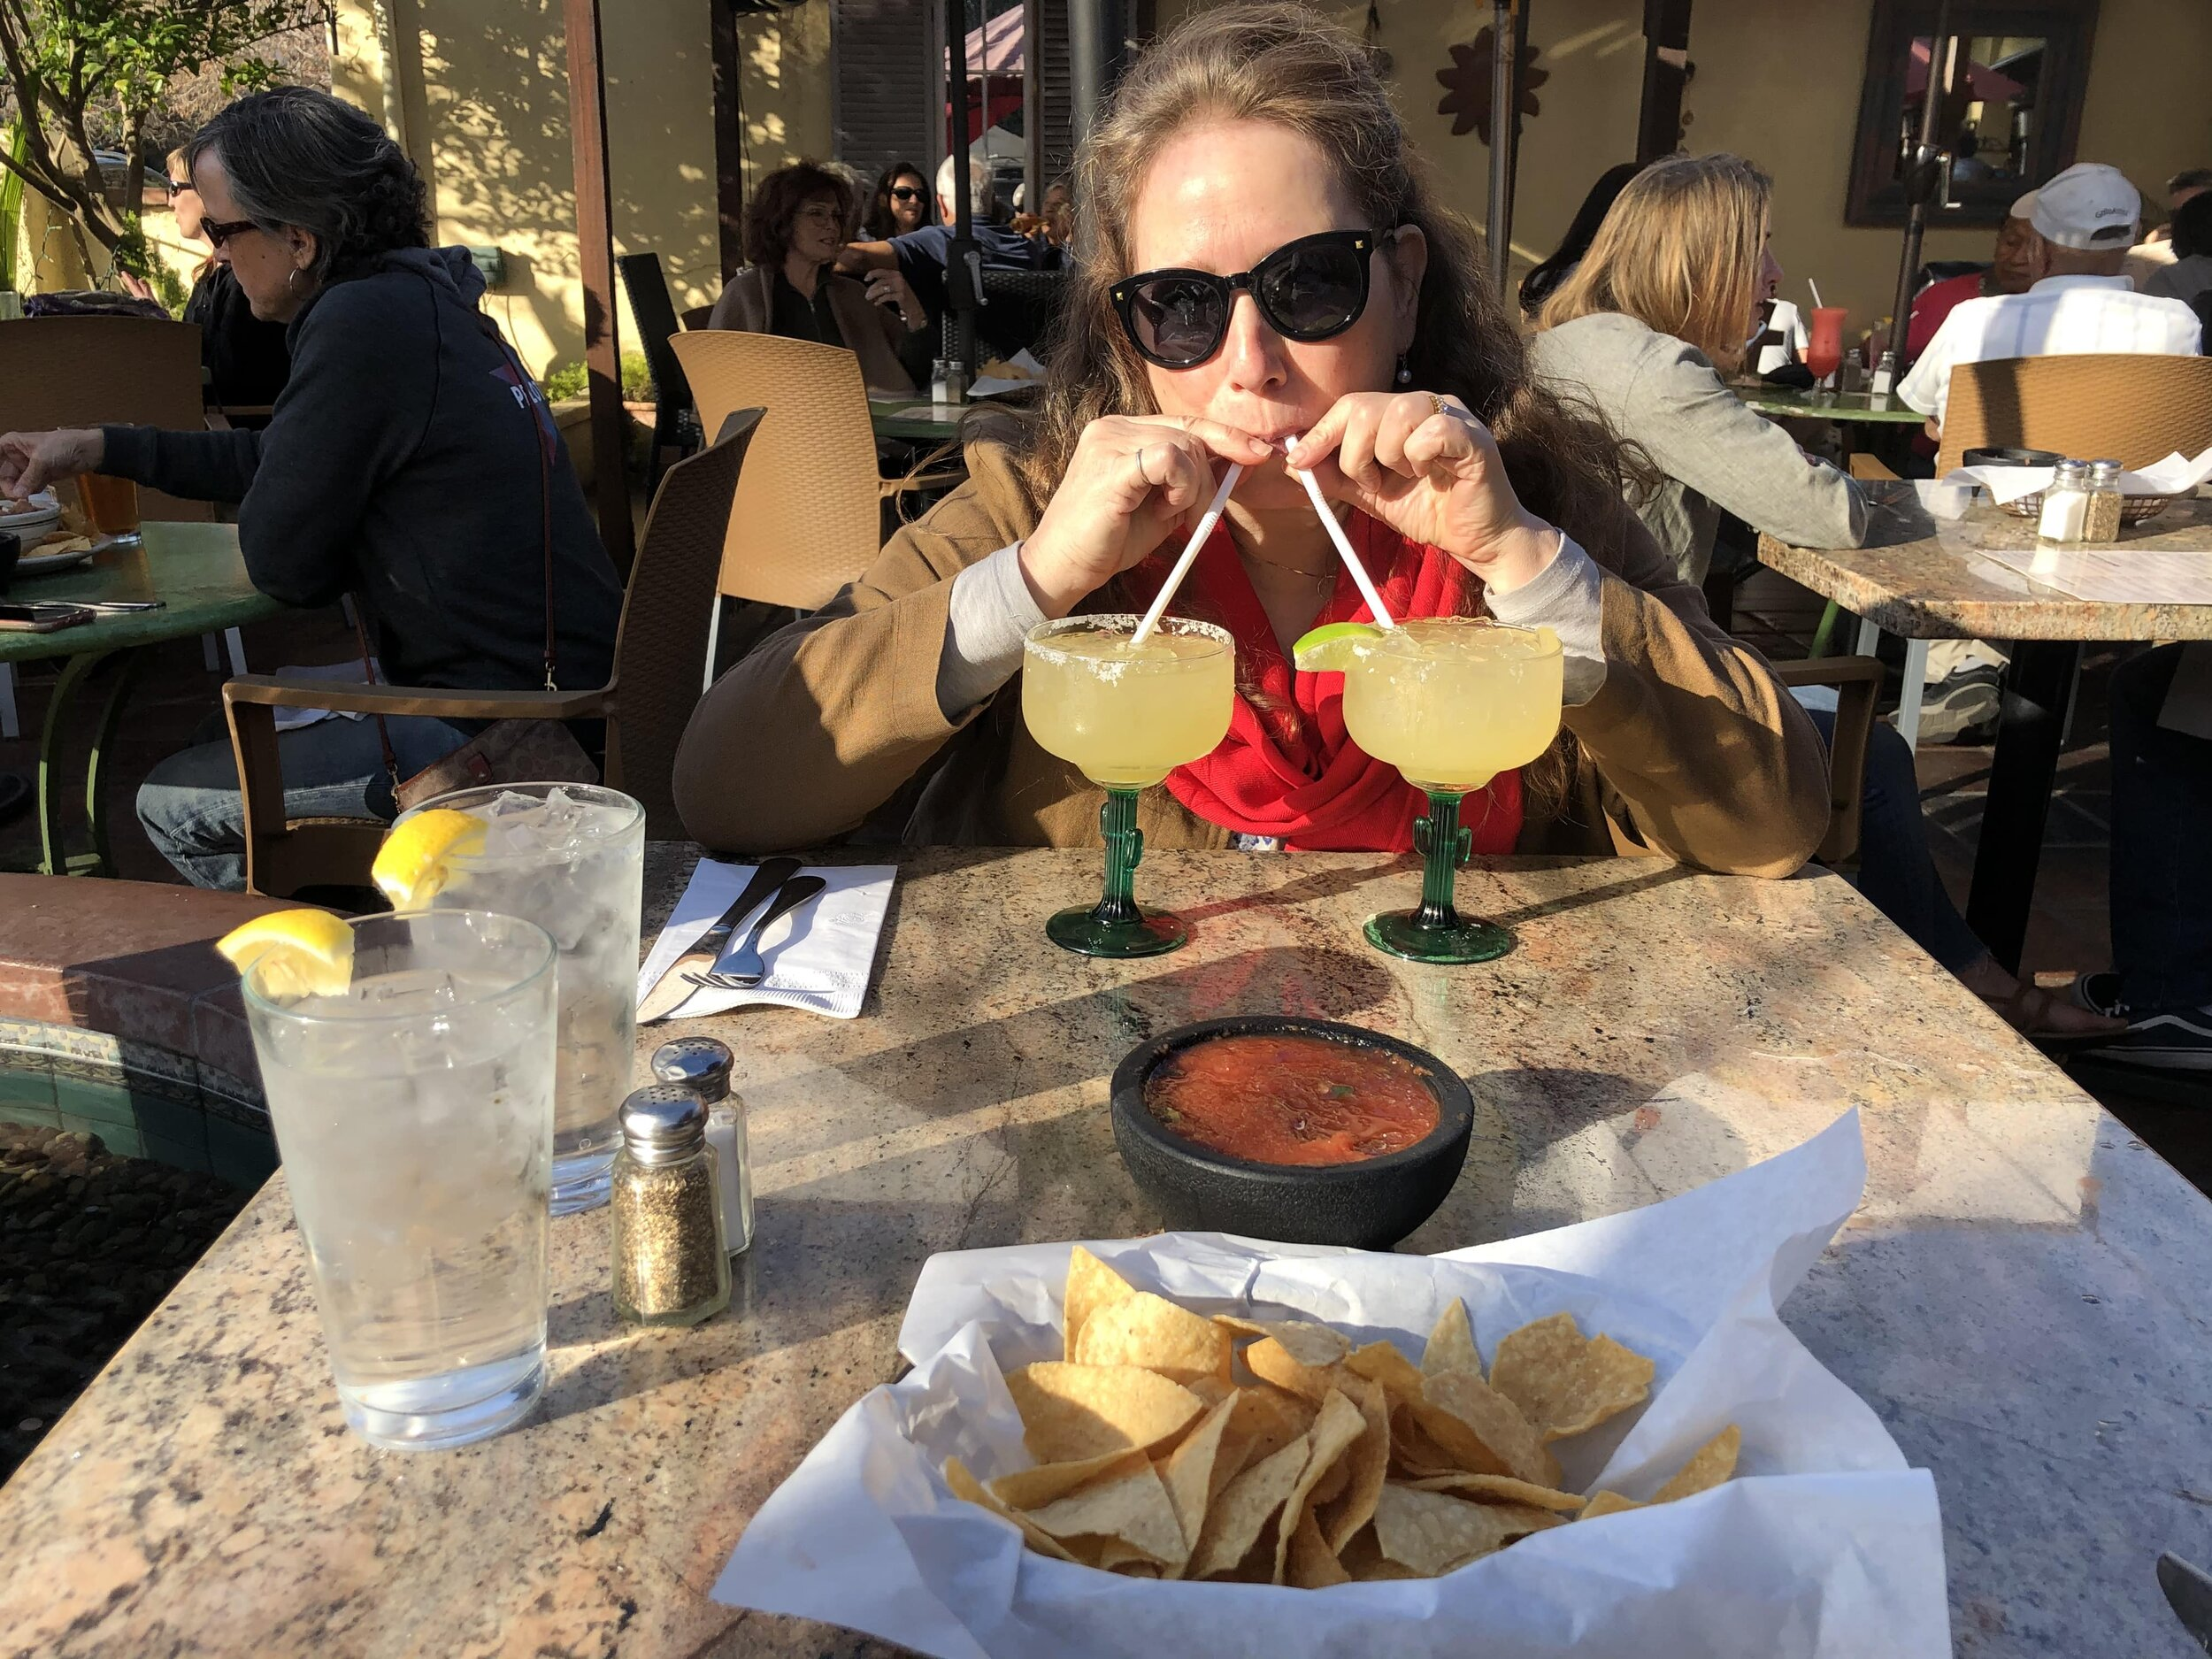 Feeling festive at Agave Maria's, our pick for best Mexican food in Ojai.